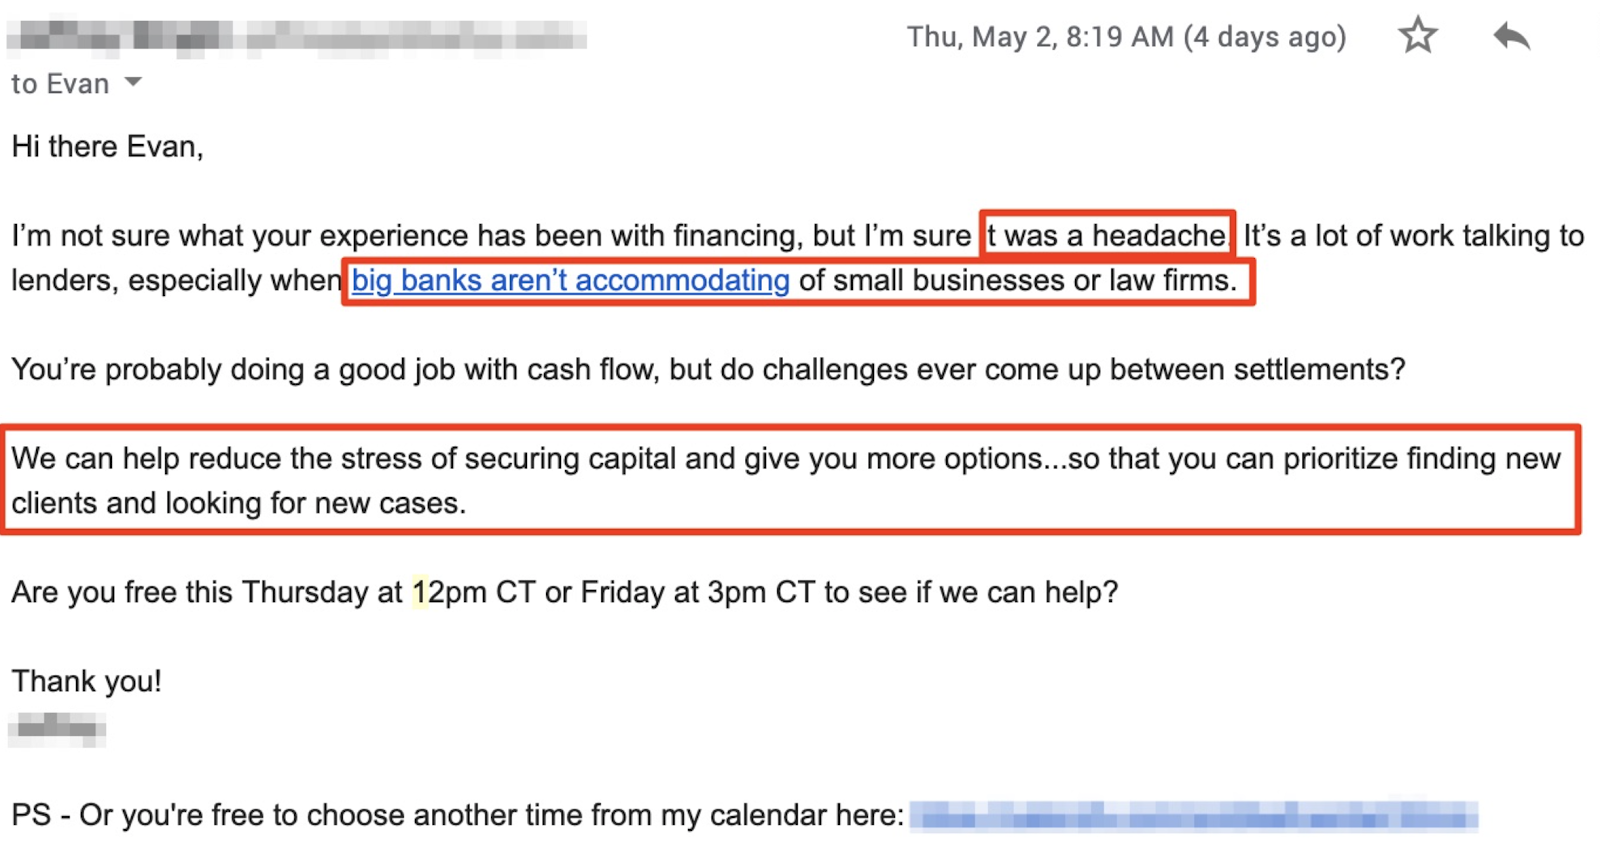 consulting skill: sending emails